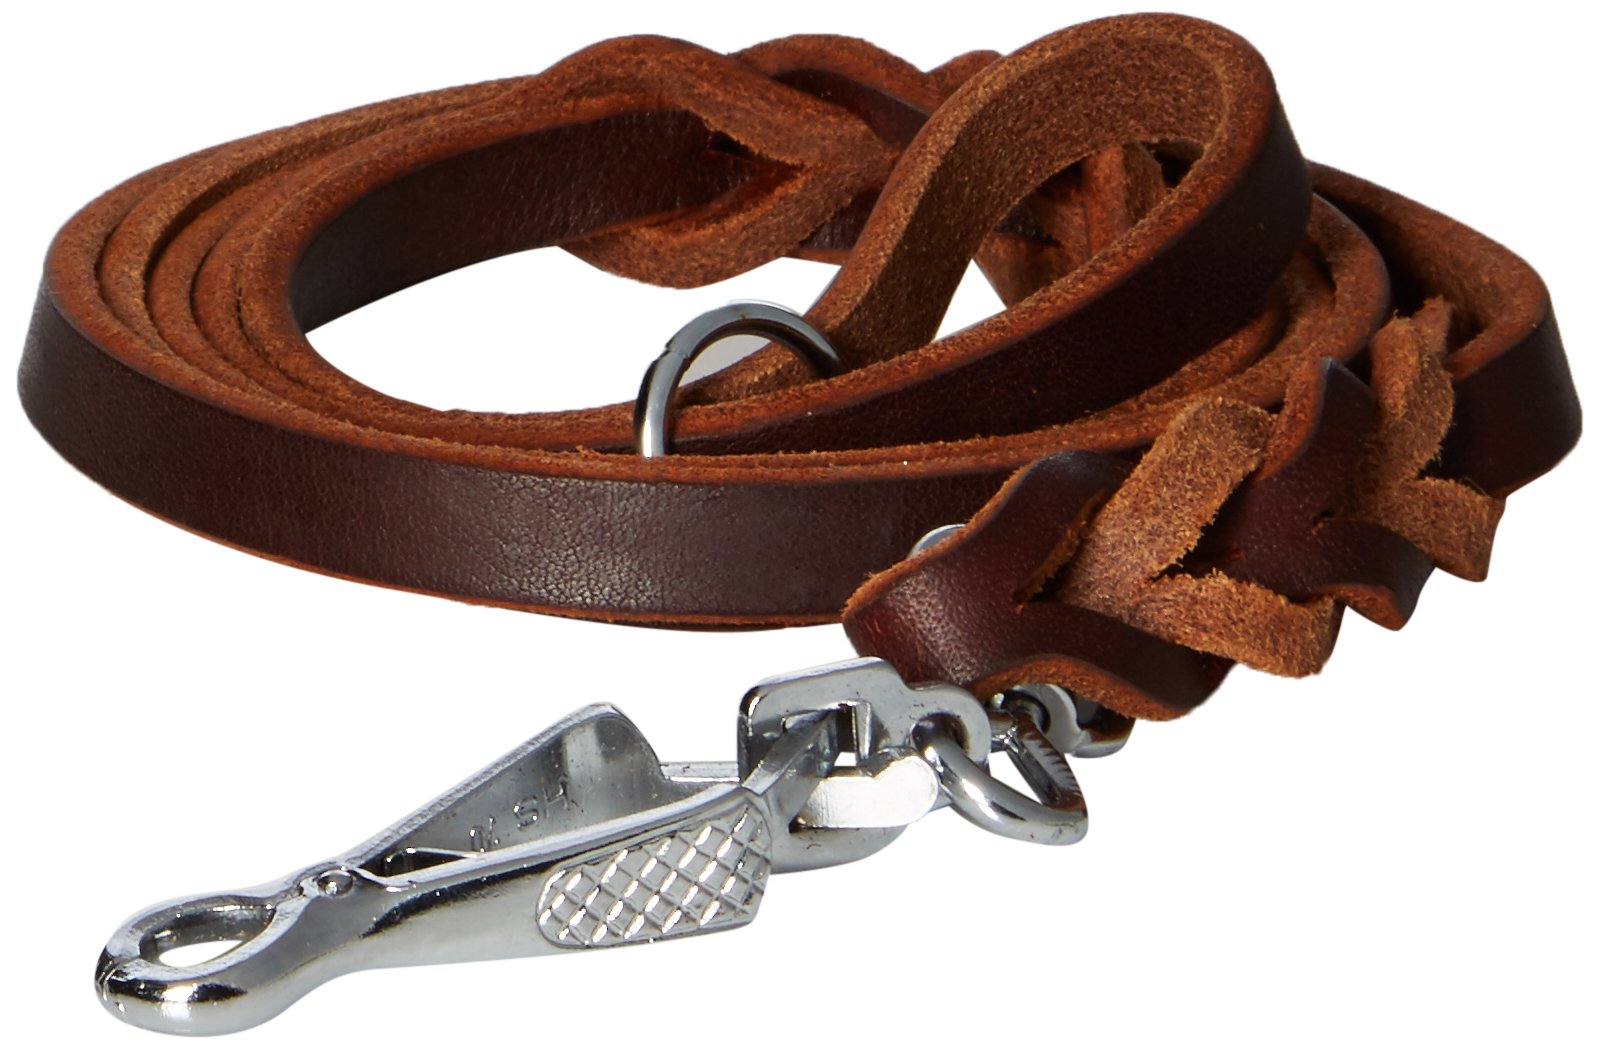 Dean & Tyler Nocturne Dog Leash with Stainless Steel Ring on Handle and Herm Sprenger Snap Hook, 5-Feet by 1/2-Inch, Brown